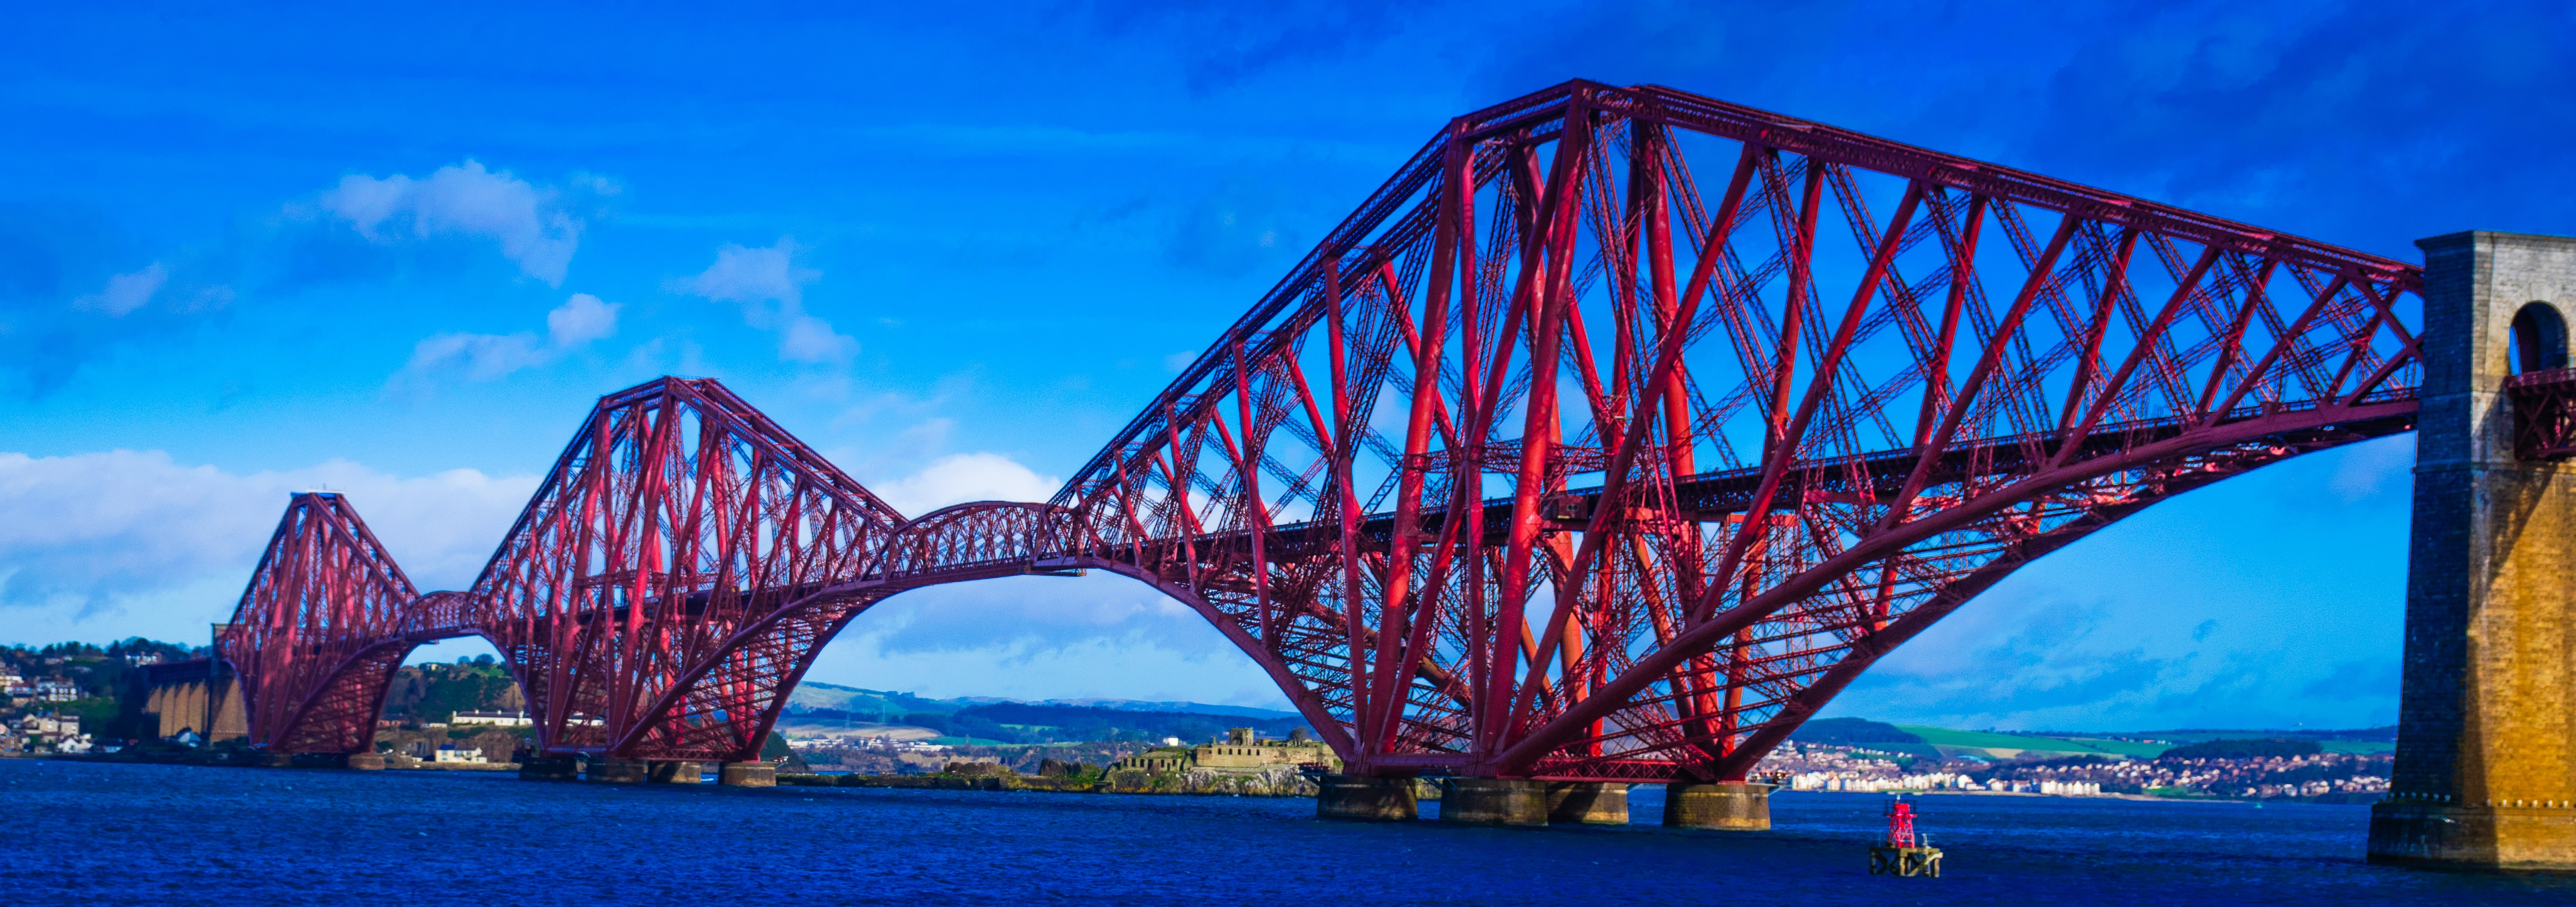 Forth_Rail_Bridge_4.jpg